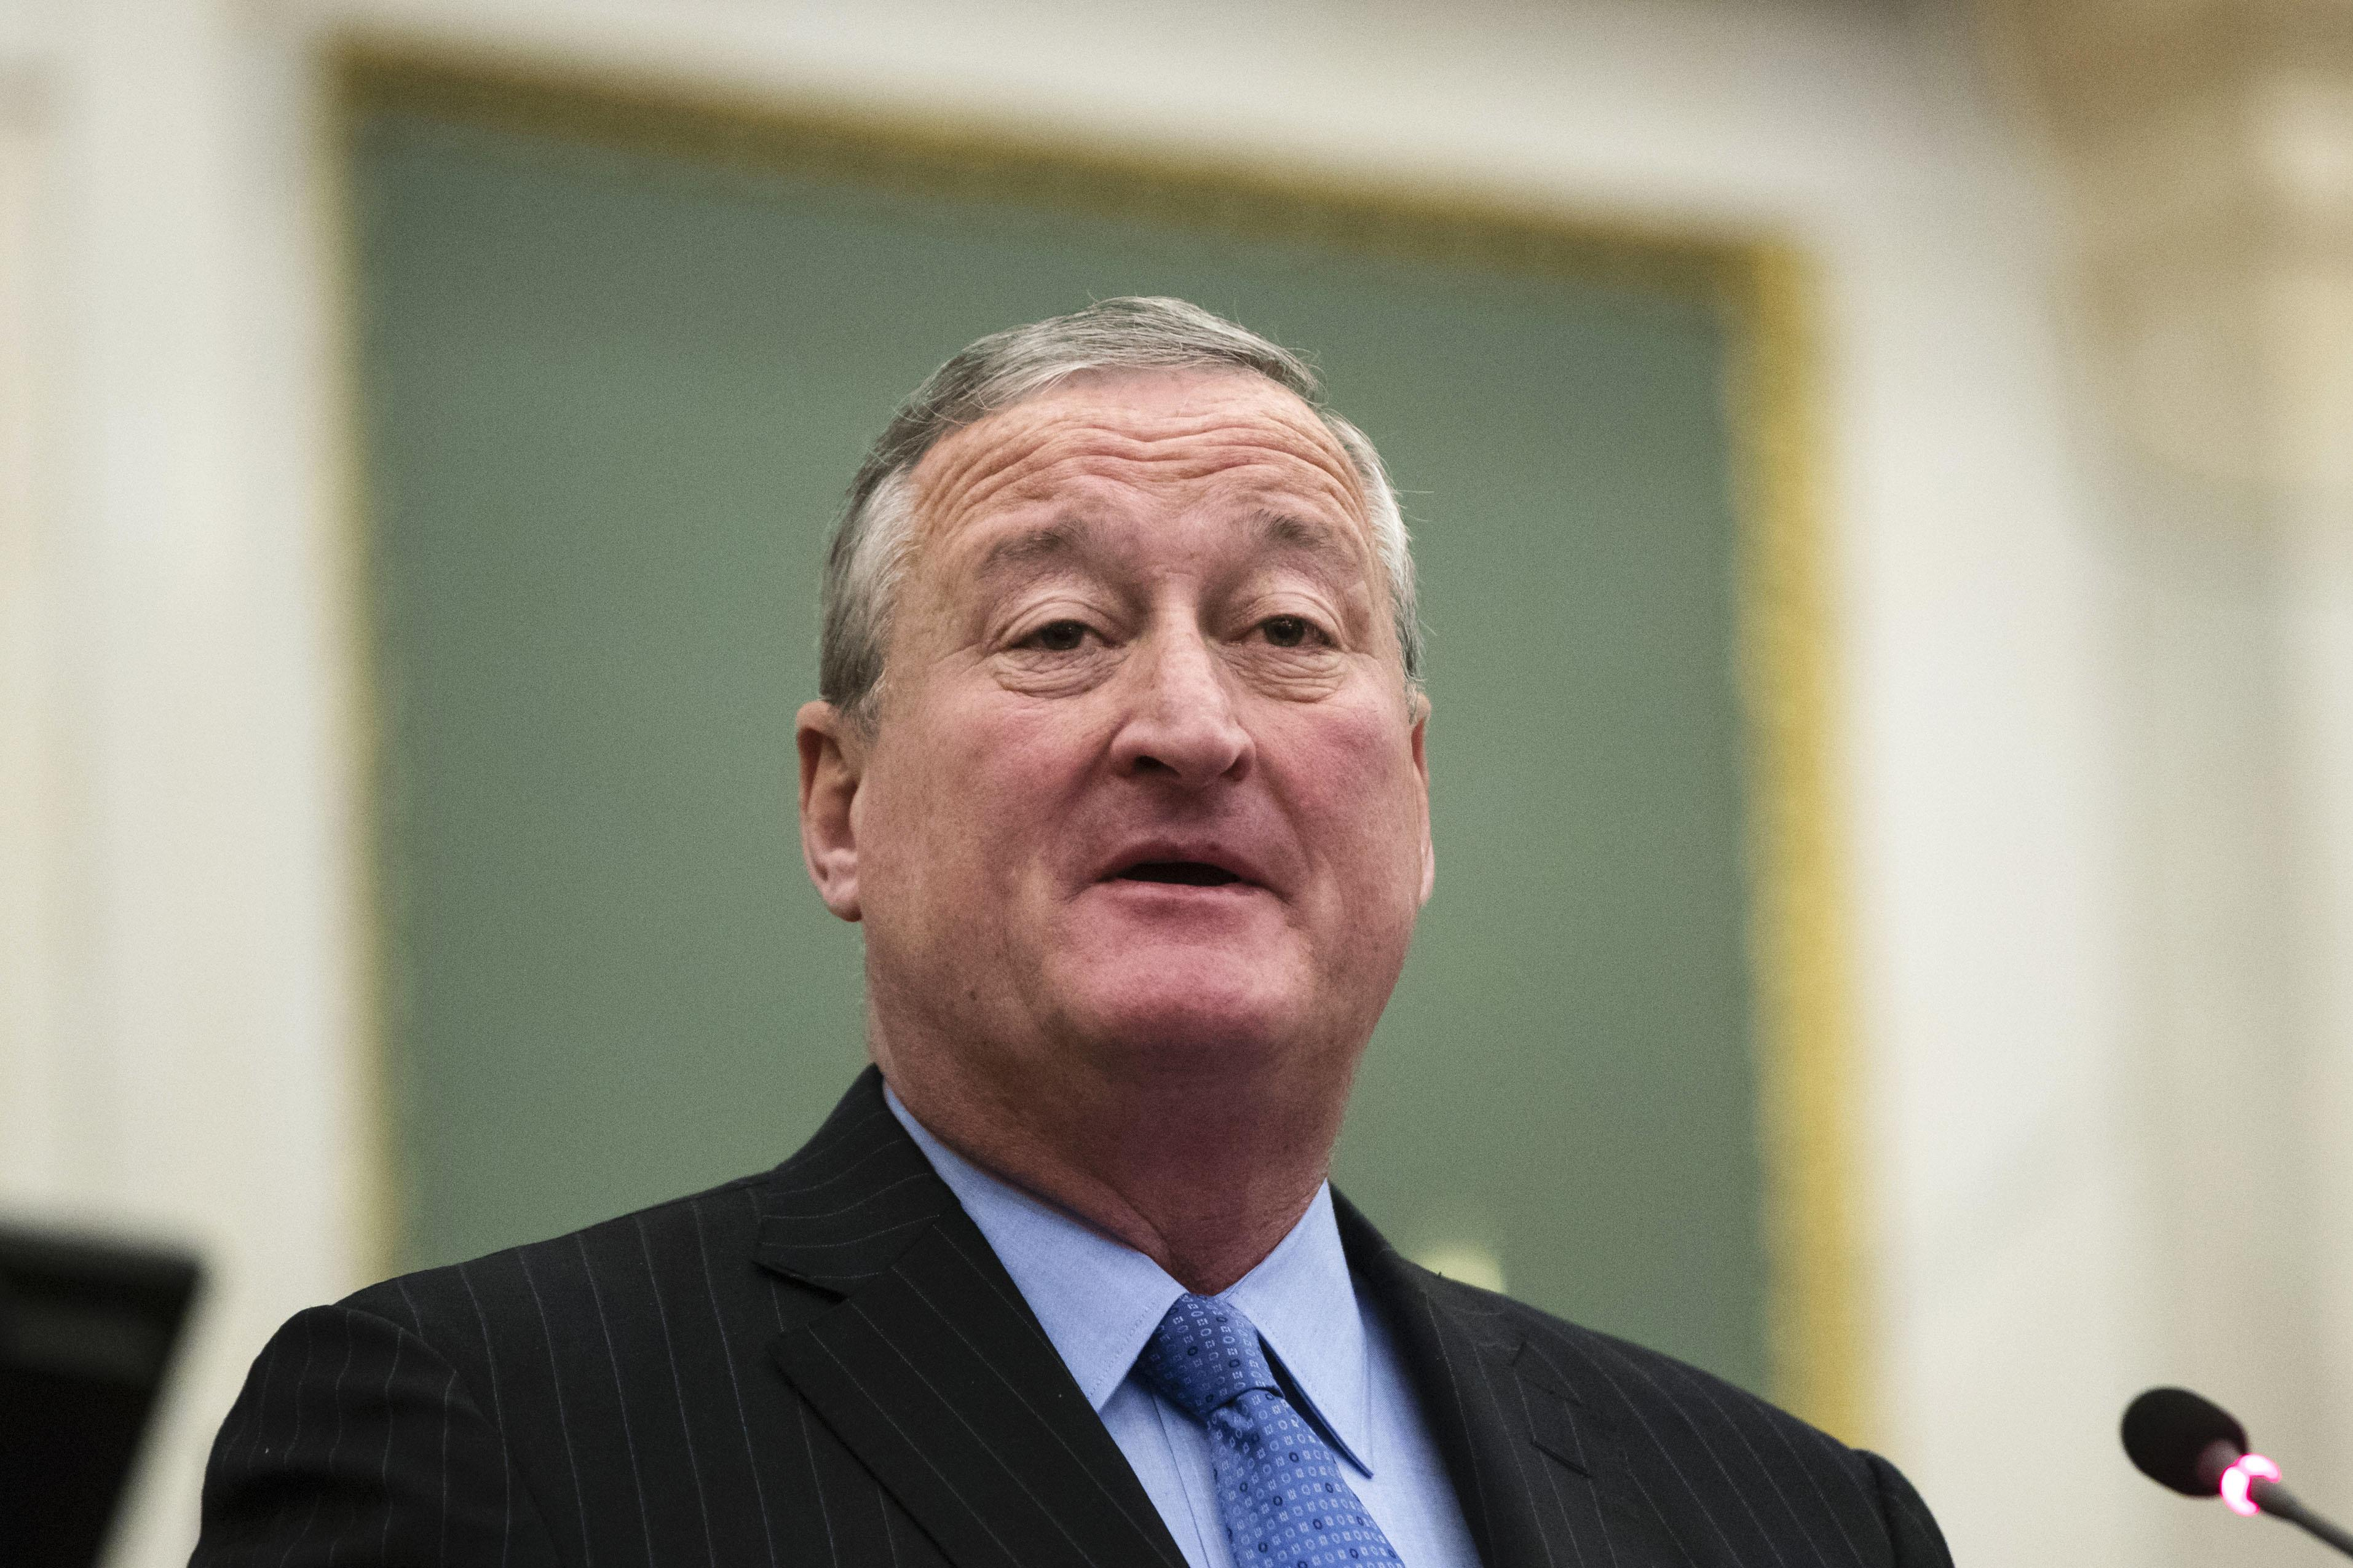 Jim Kenney Bio News s Washington Times